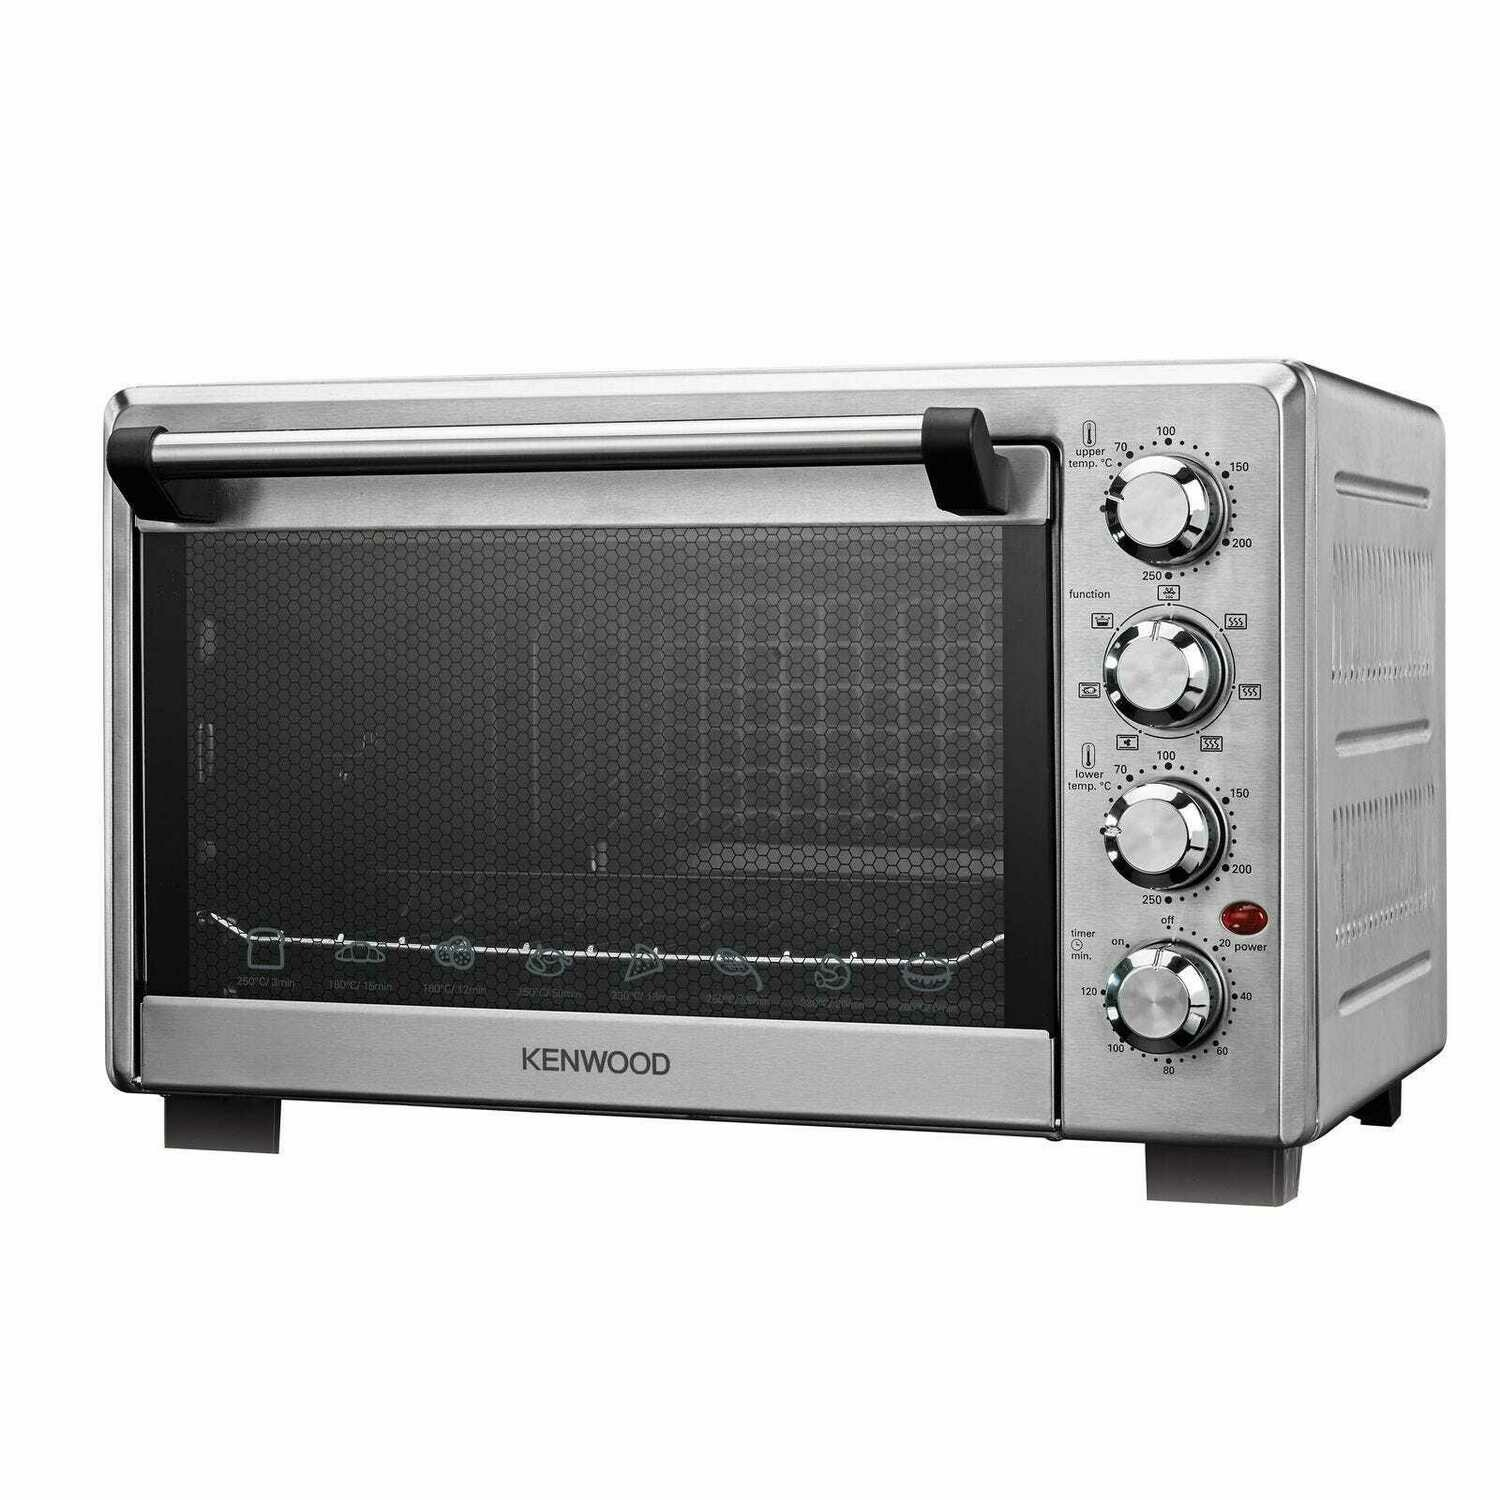 Kenwood Electric Oven 32L MOM880BS